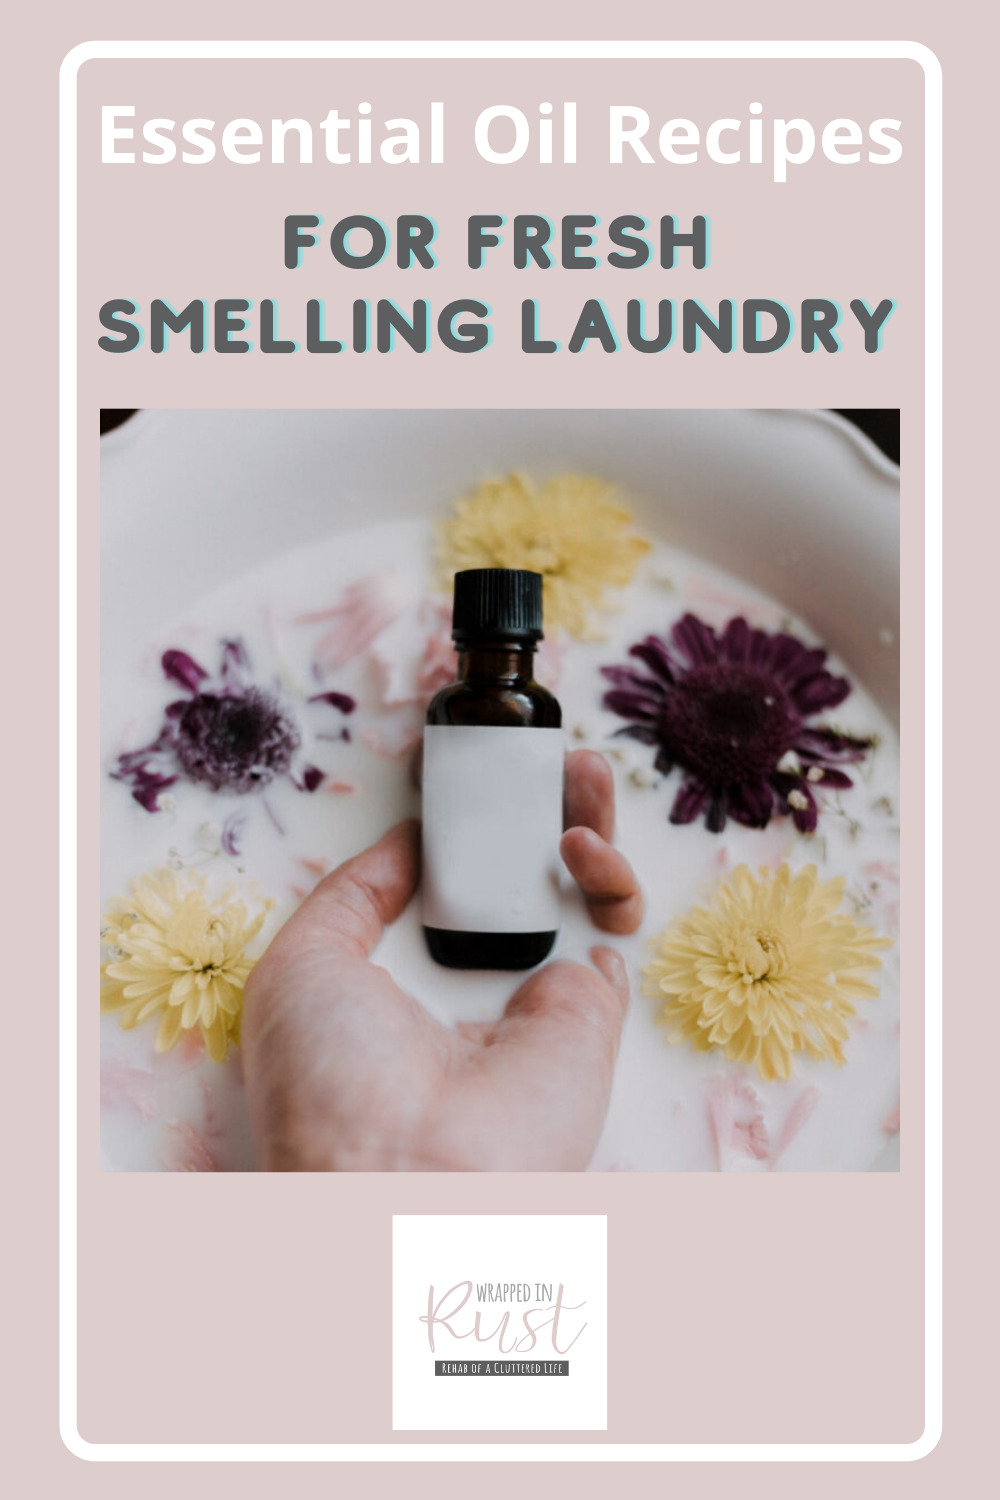 Wrappedinrust.com has creative solutions for tricky cleaning projects. Keep your laundry smelling fresh without harsh chemicals! Learn how you can add the perfect scent to your next load of laundry using essential oils!